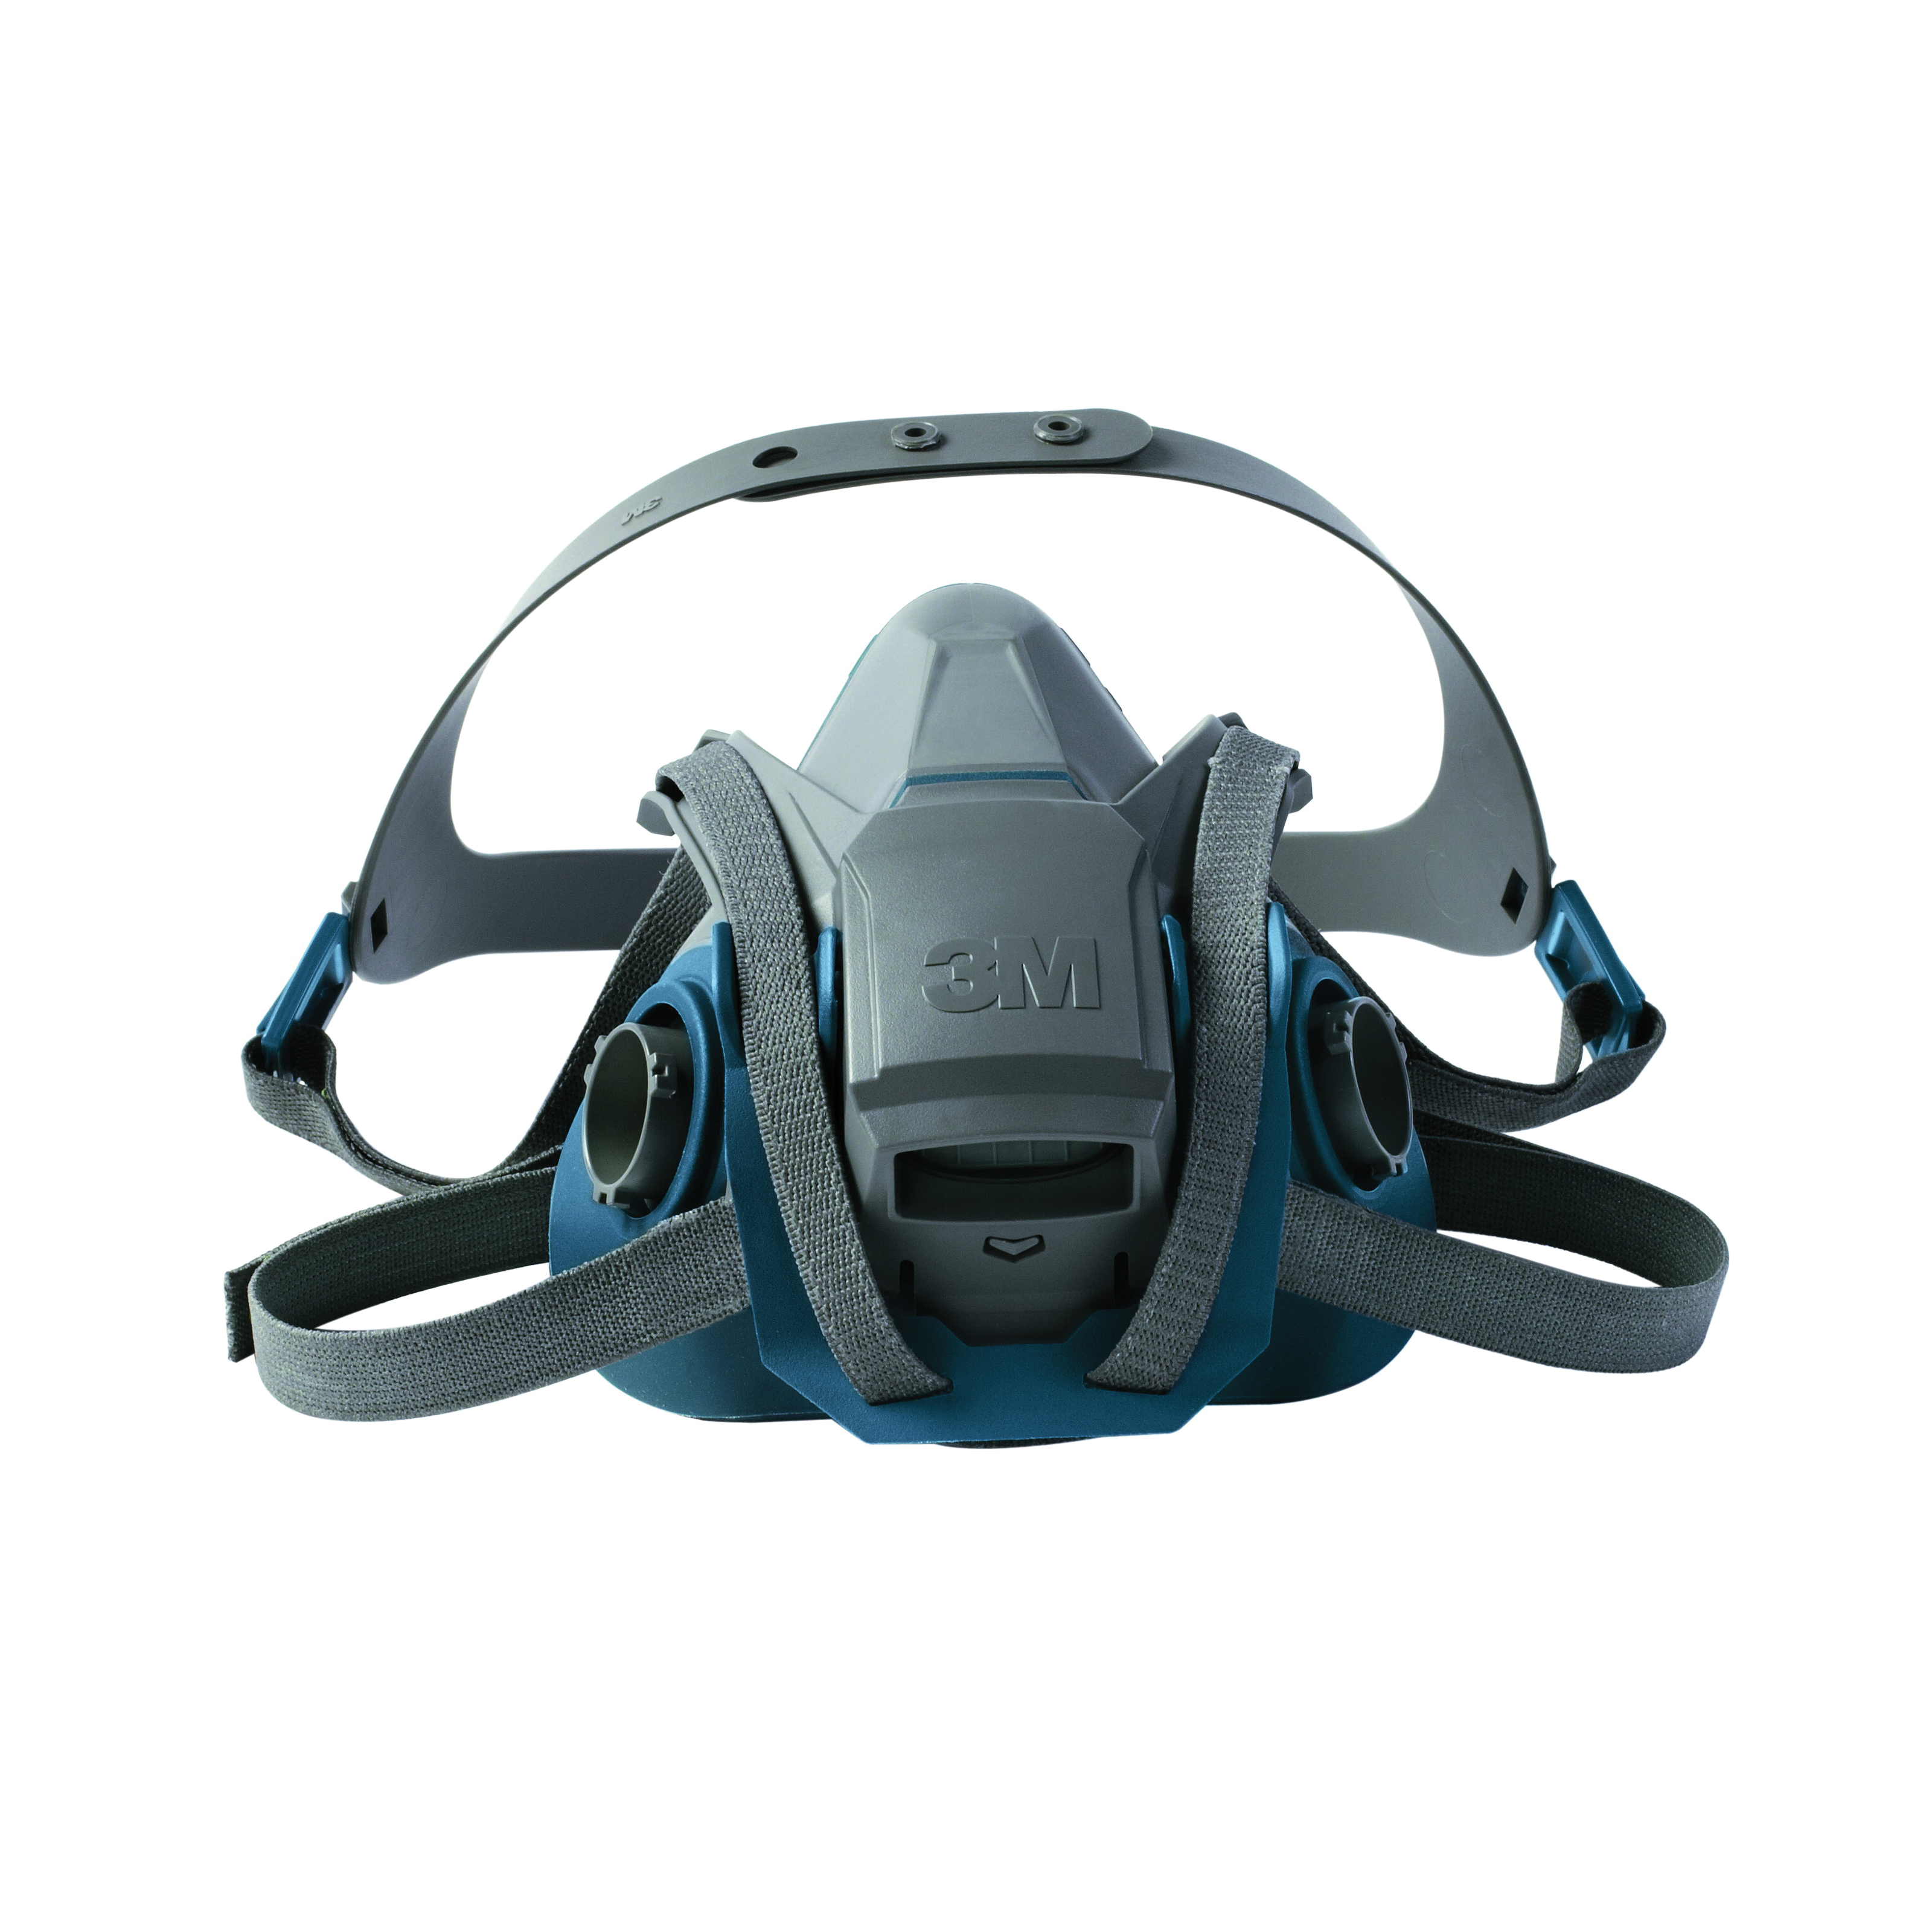 3M™ 051131-49490 6502QL Probed Reusable Half Facepiece Respirator With Cool Flow™ Exhalation Valve, M, 4-Point Quick Latch Suspension, Bayonet Connection, Resists: Gases and Vapors